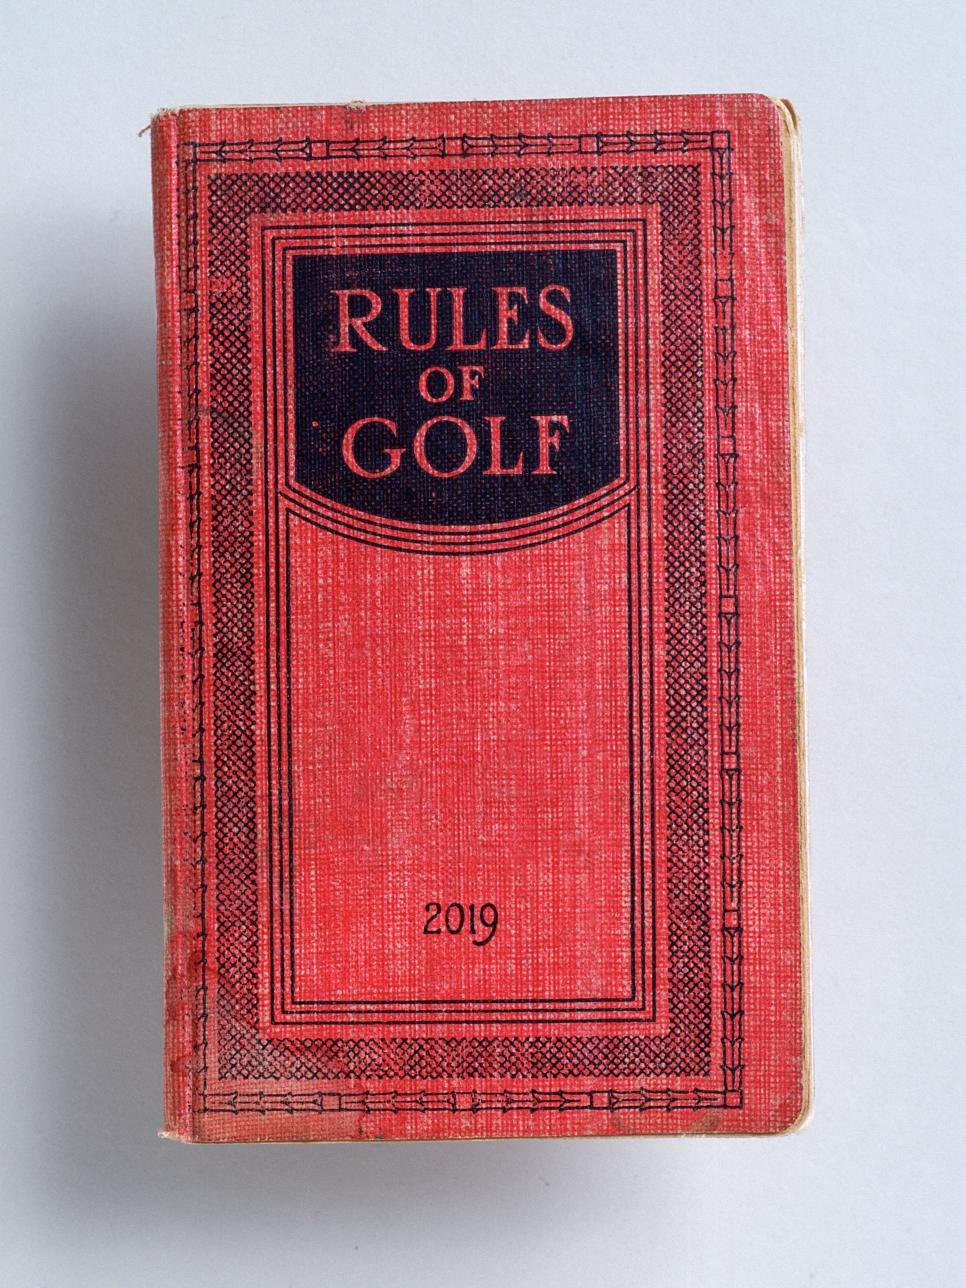 modernized-rules-of-golf-book-antique-2019.jpg